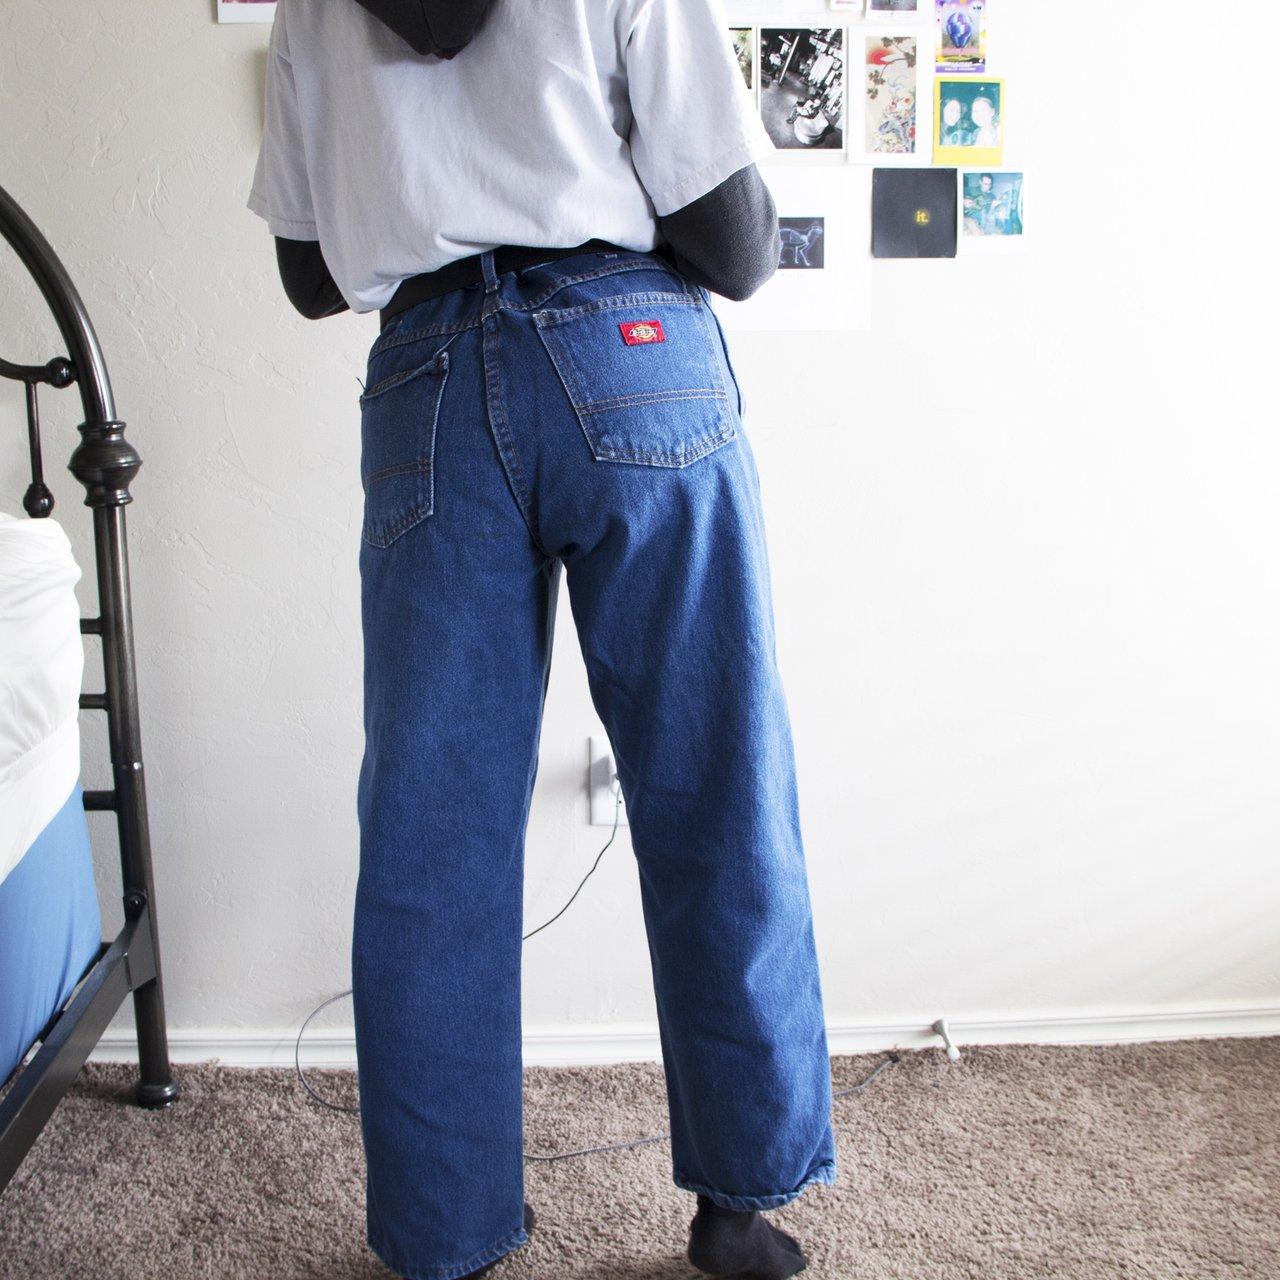 f3ffa237fc7bf VINTAGE HIGH WAISTED DICKIES JEANS!!! these